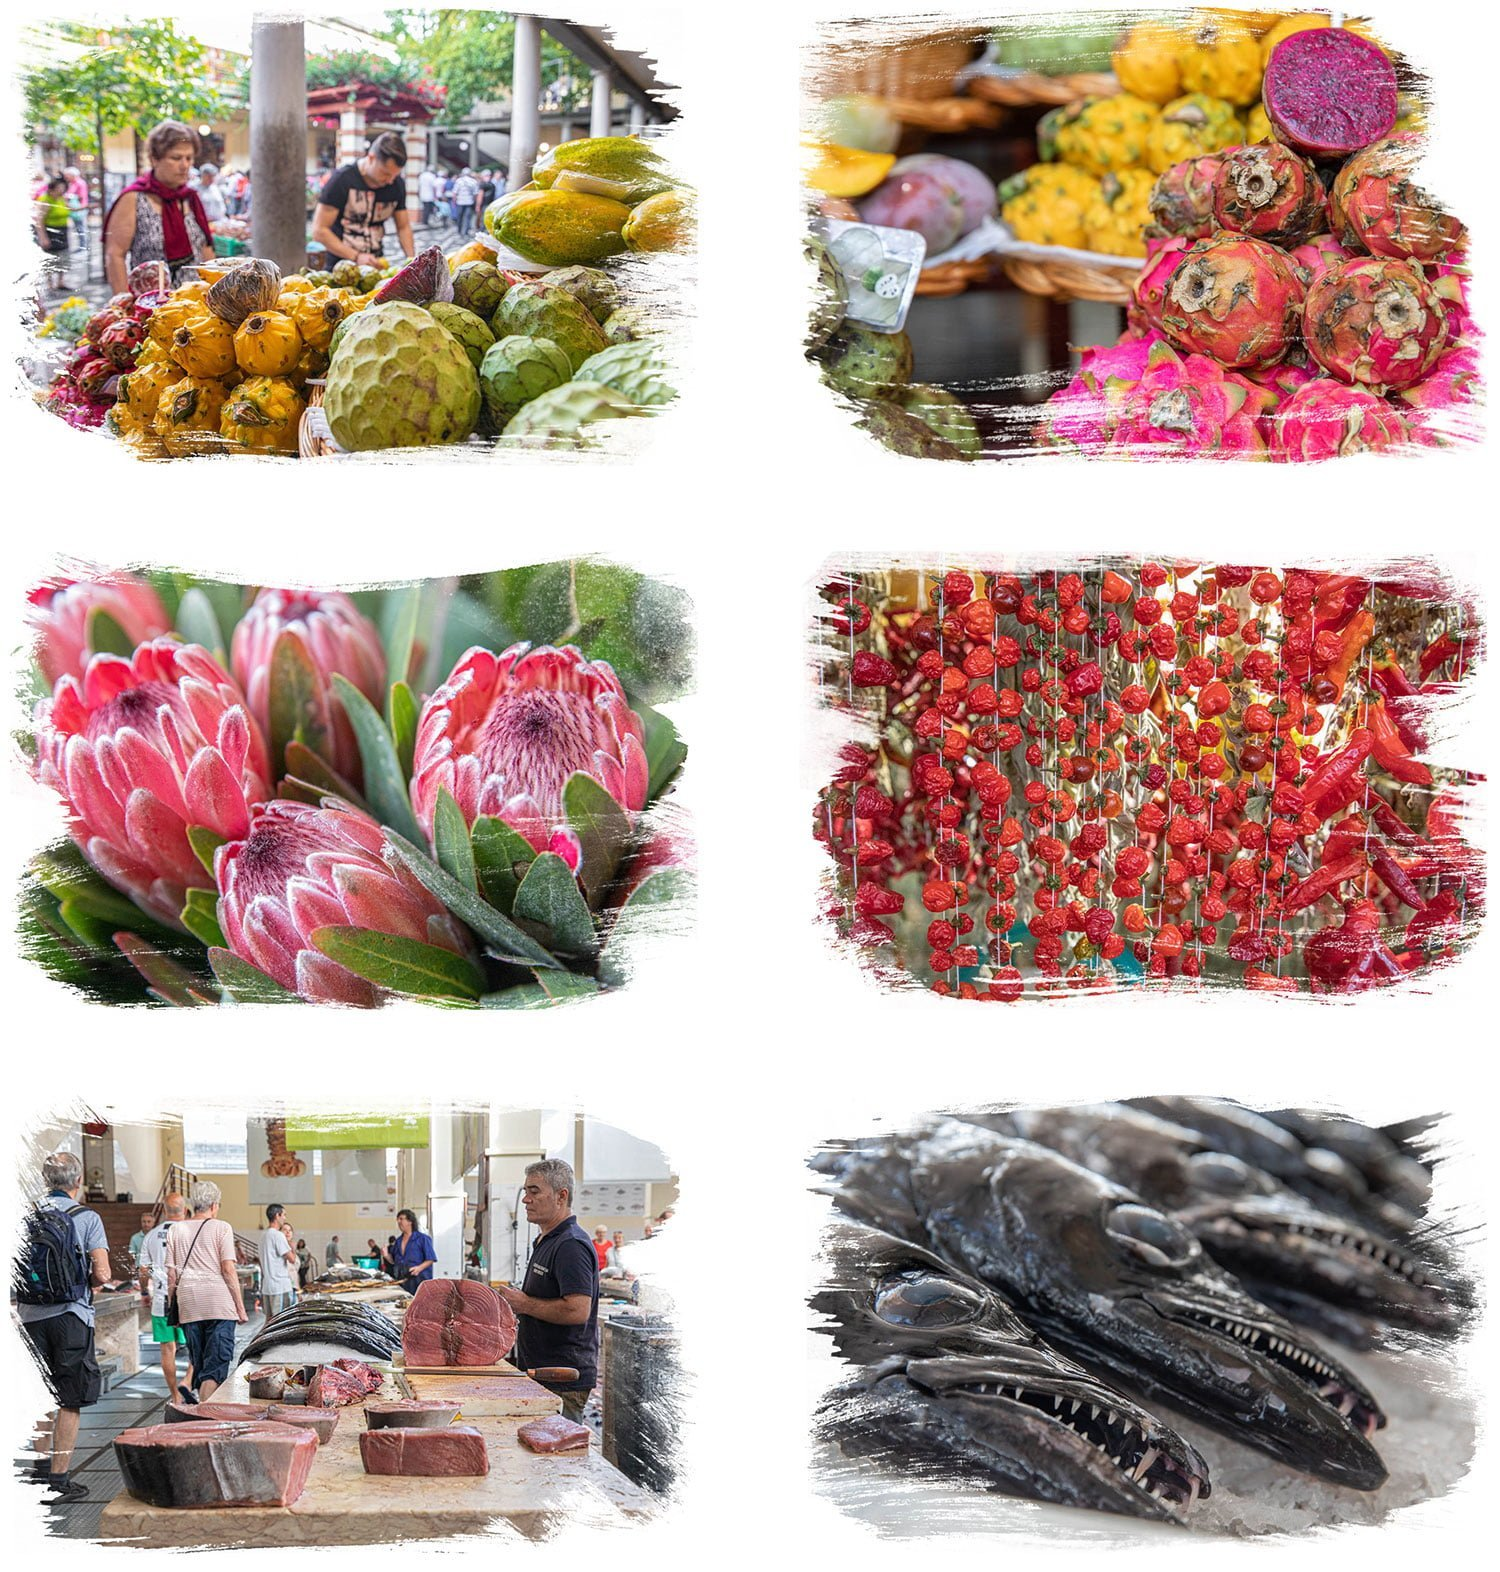 Farmers Market in old town Funchal Madeira